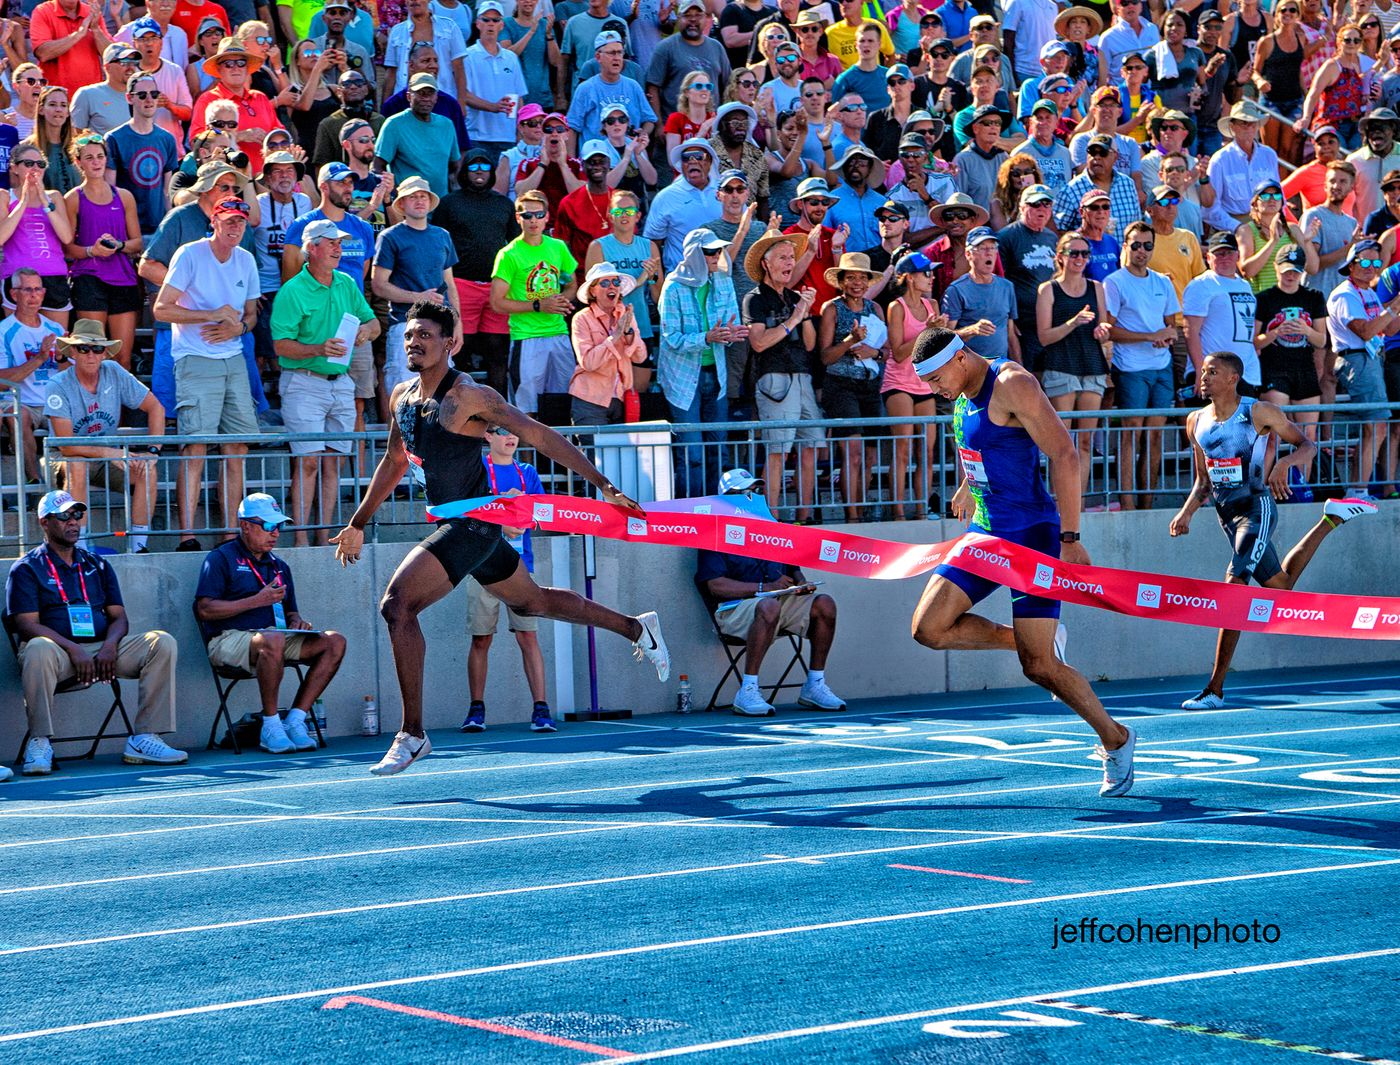 2019-USATF-Outdoor-Champs-day-3-kerley-norman-color-400m--3558---jeff-cohen-photo--web.jpg